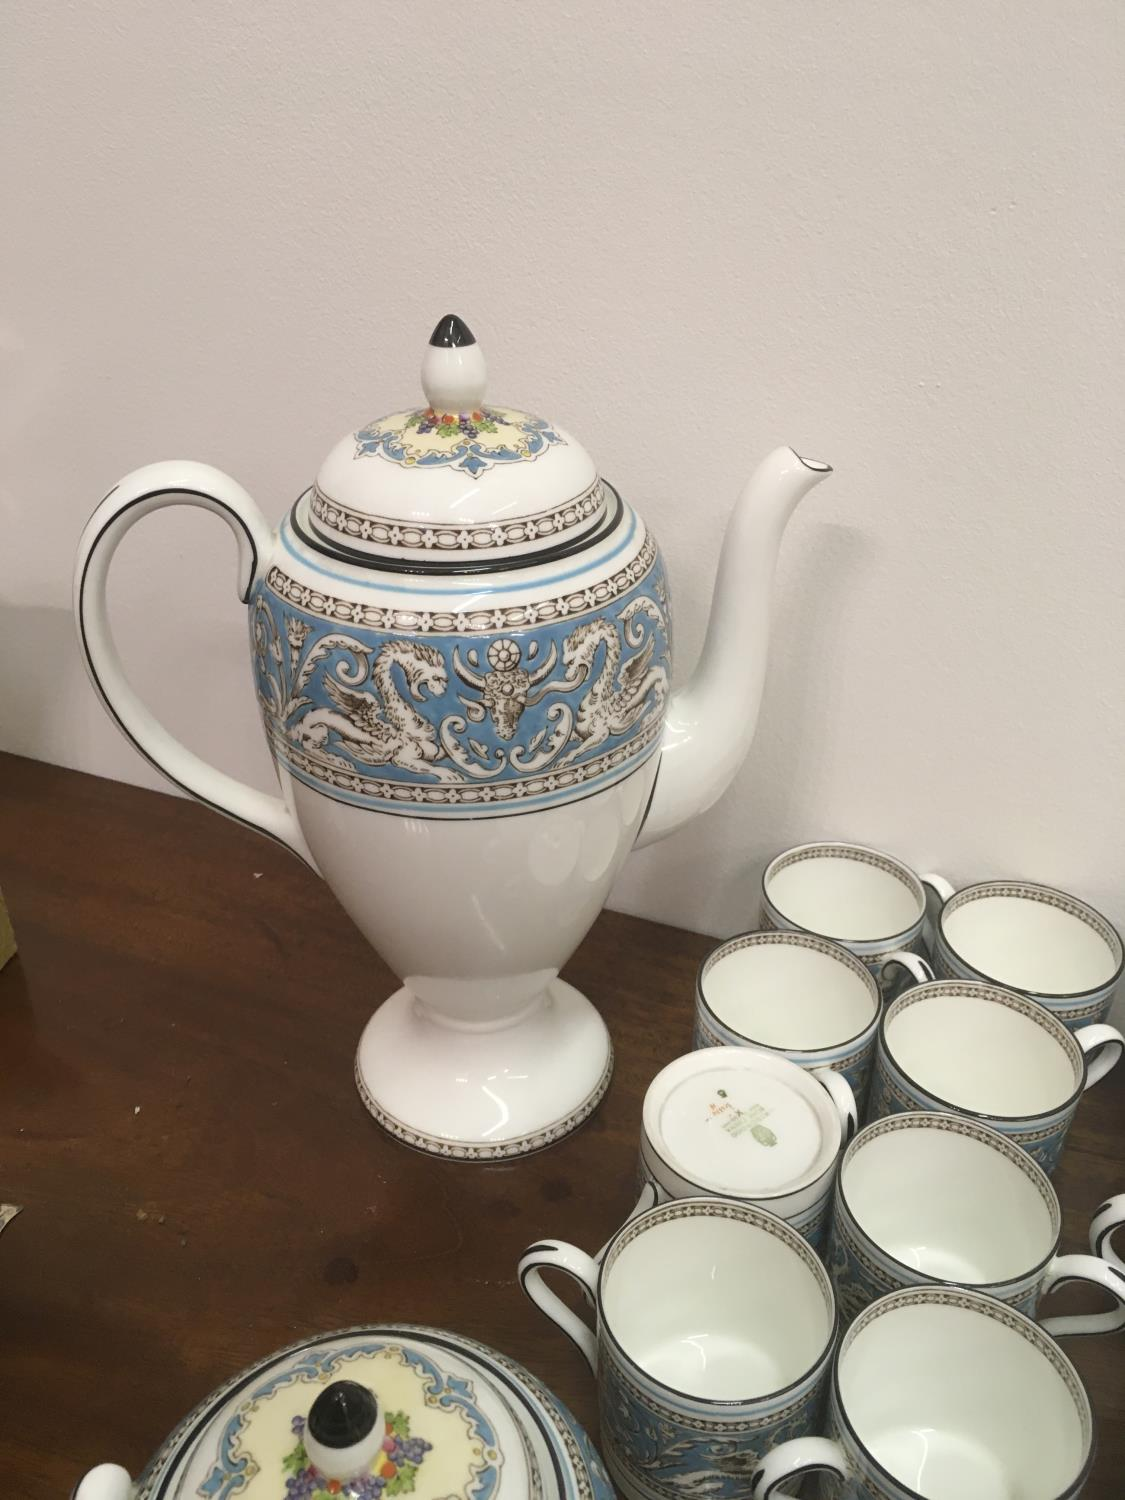 Wedgwood Classical Tea and Coffee set 8 place setting includes, coffee pot, tea pot, cream and - Image 3 of 7